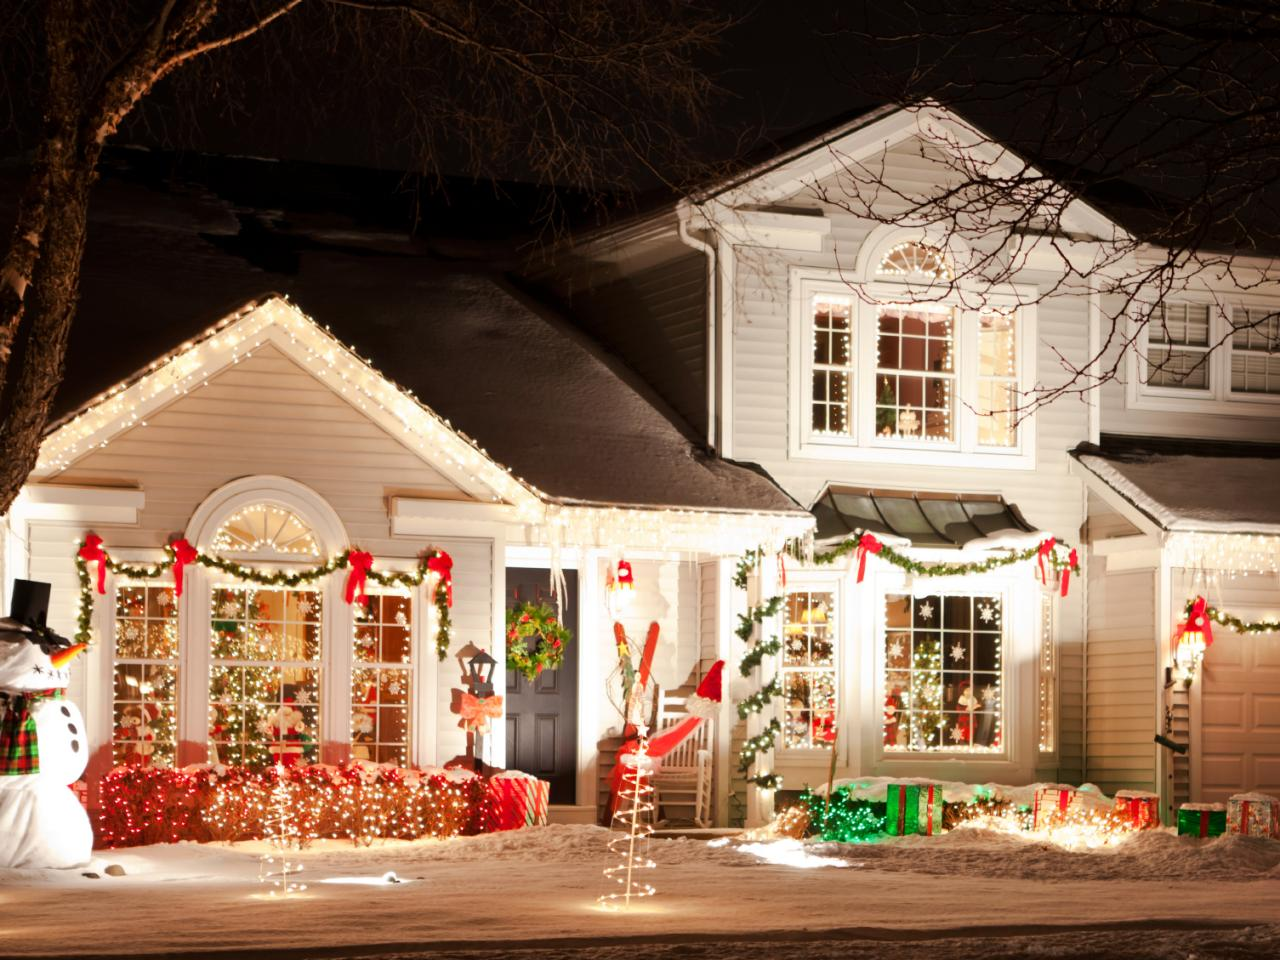 Buyers guide for the best outdoor christmas lighting diy for Decoration de maison pour noel